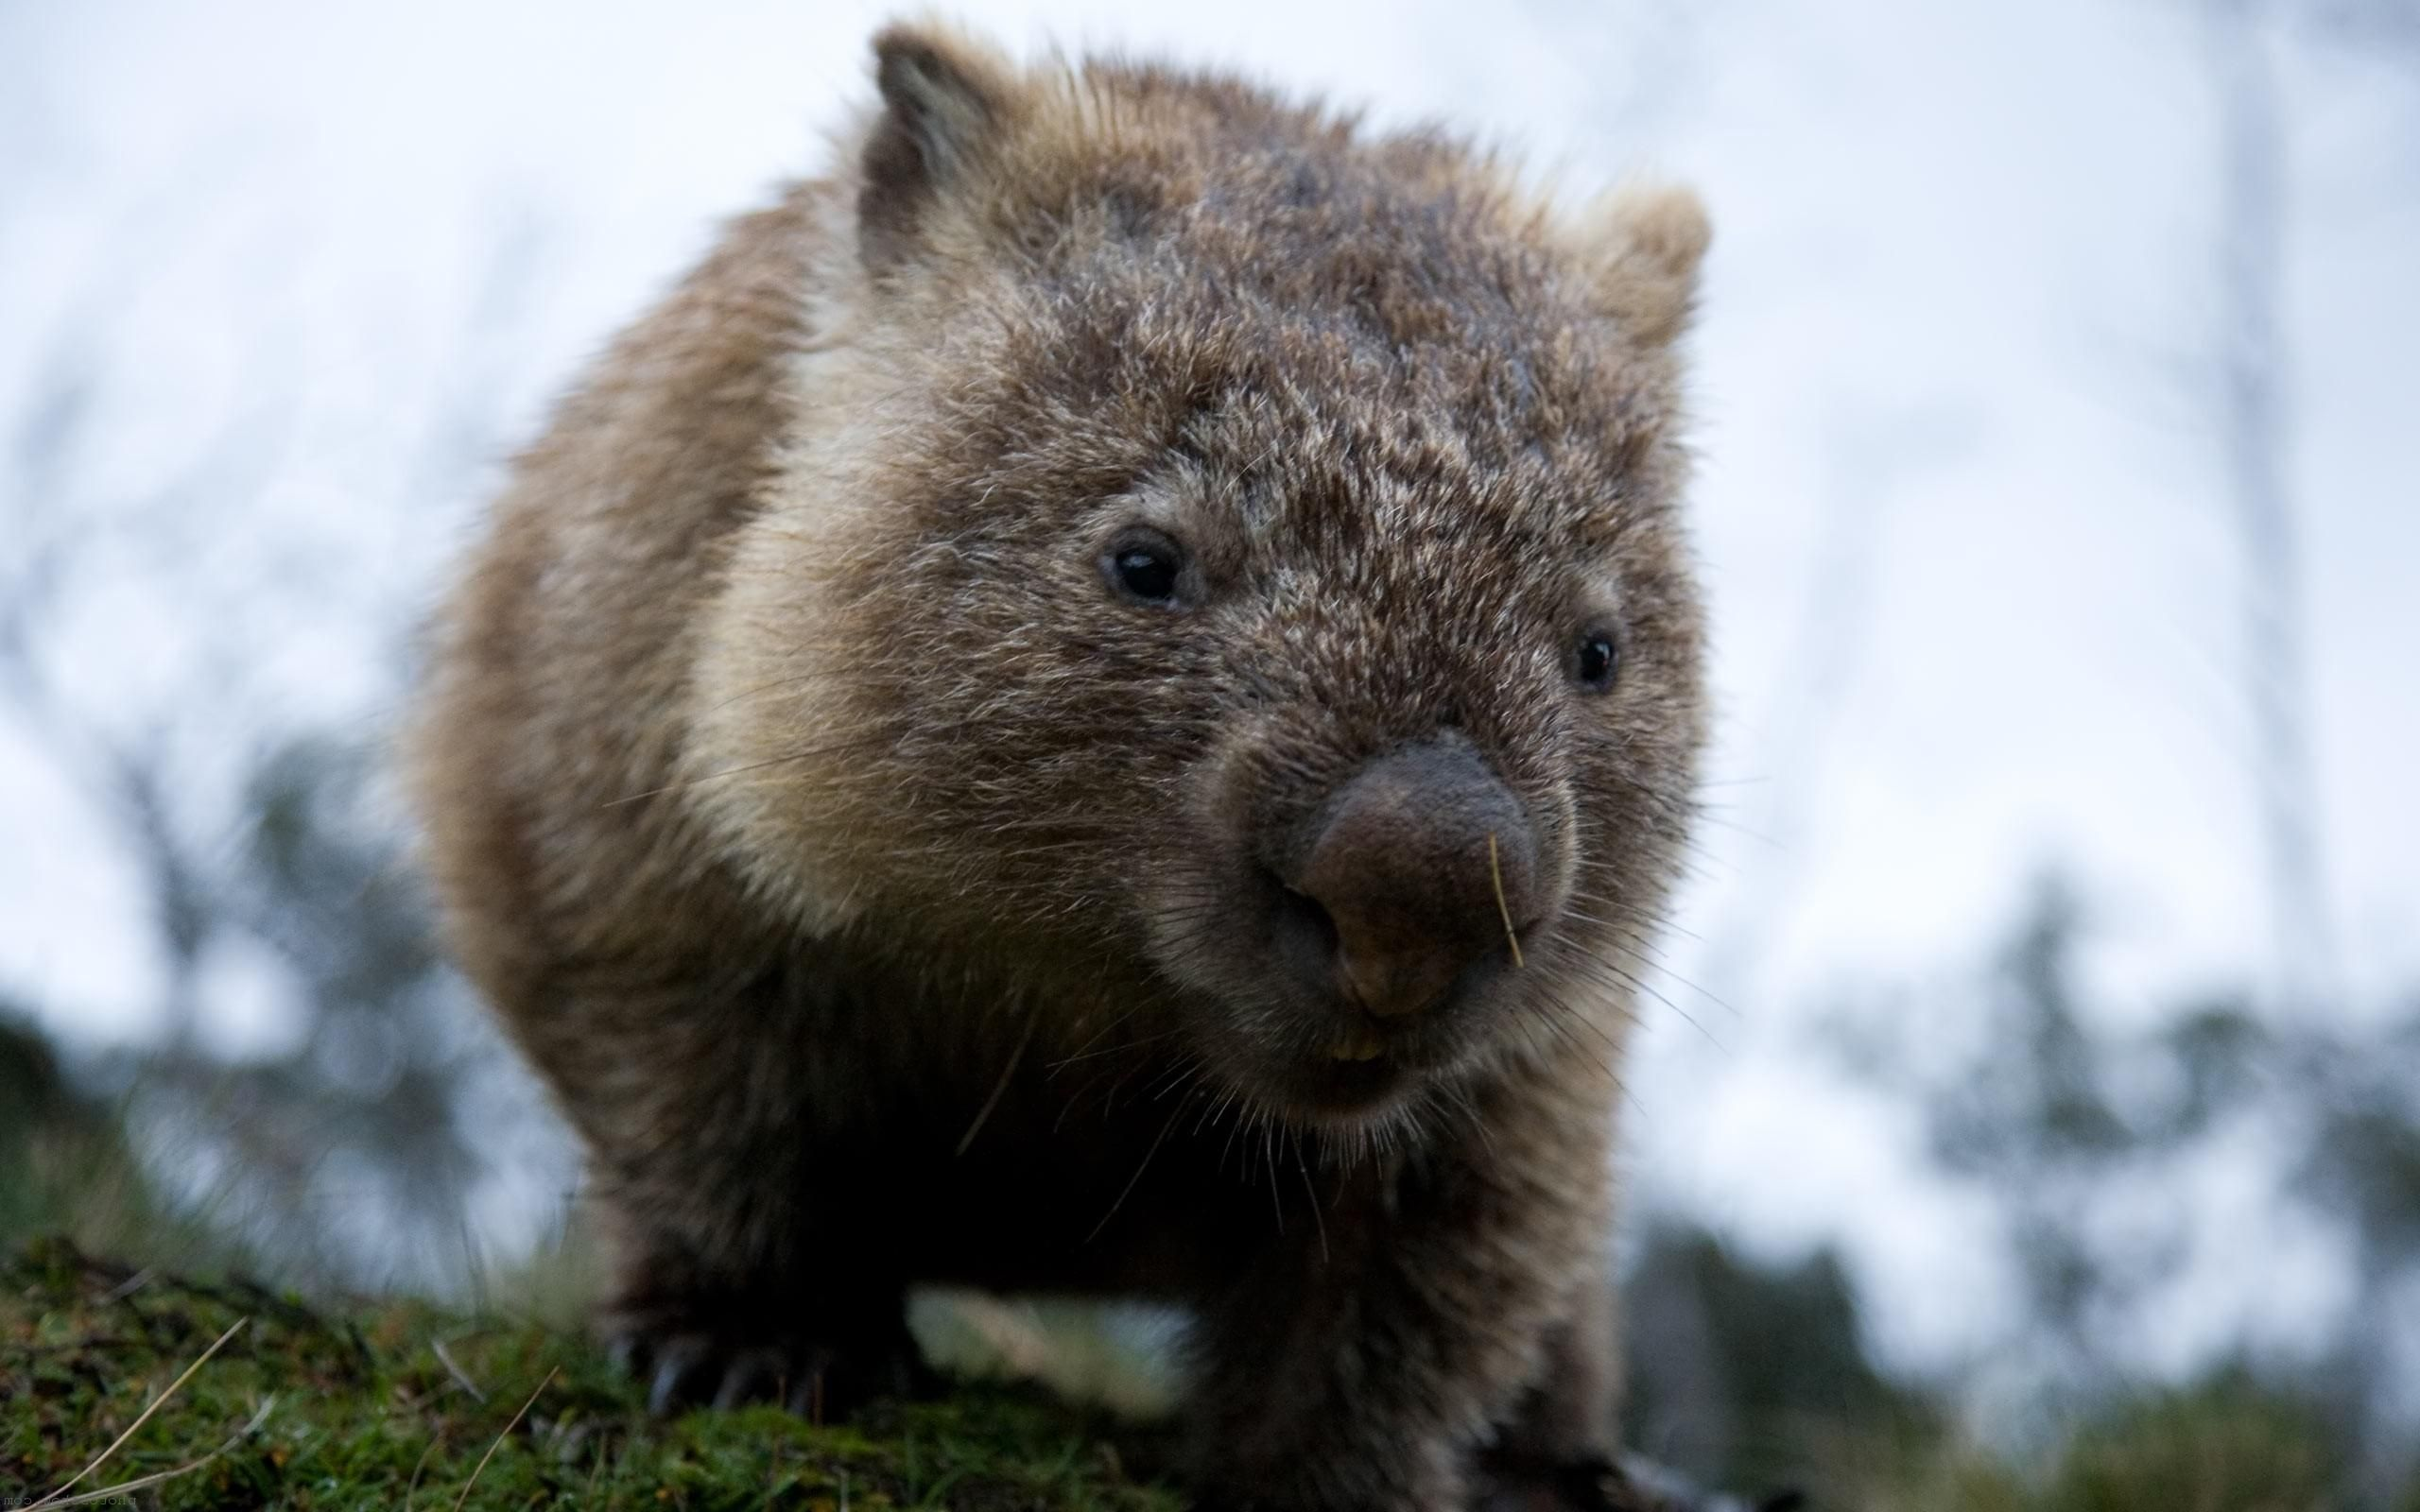 Wombat Wallpapers Cute animals, Animals wild, Wombat images